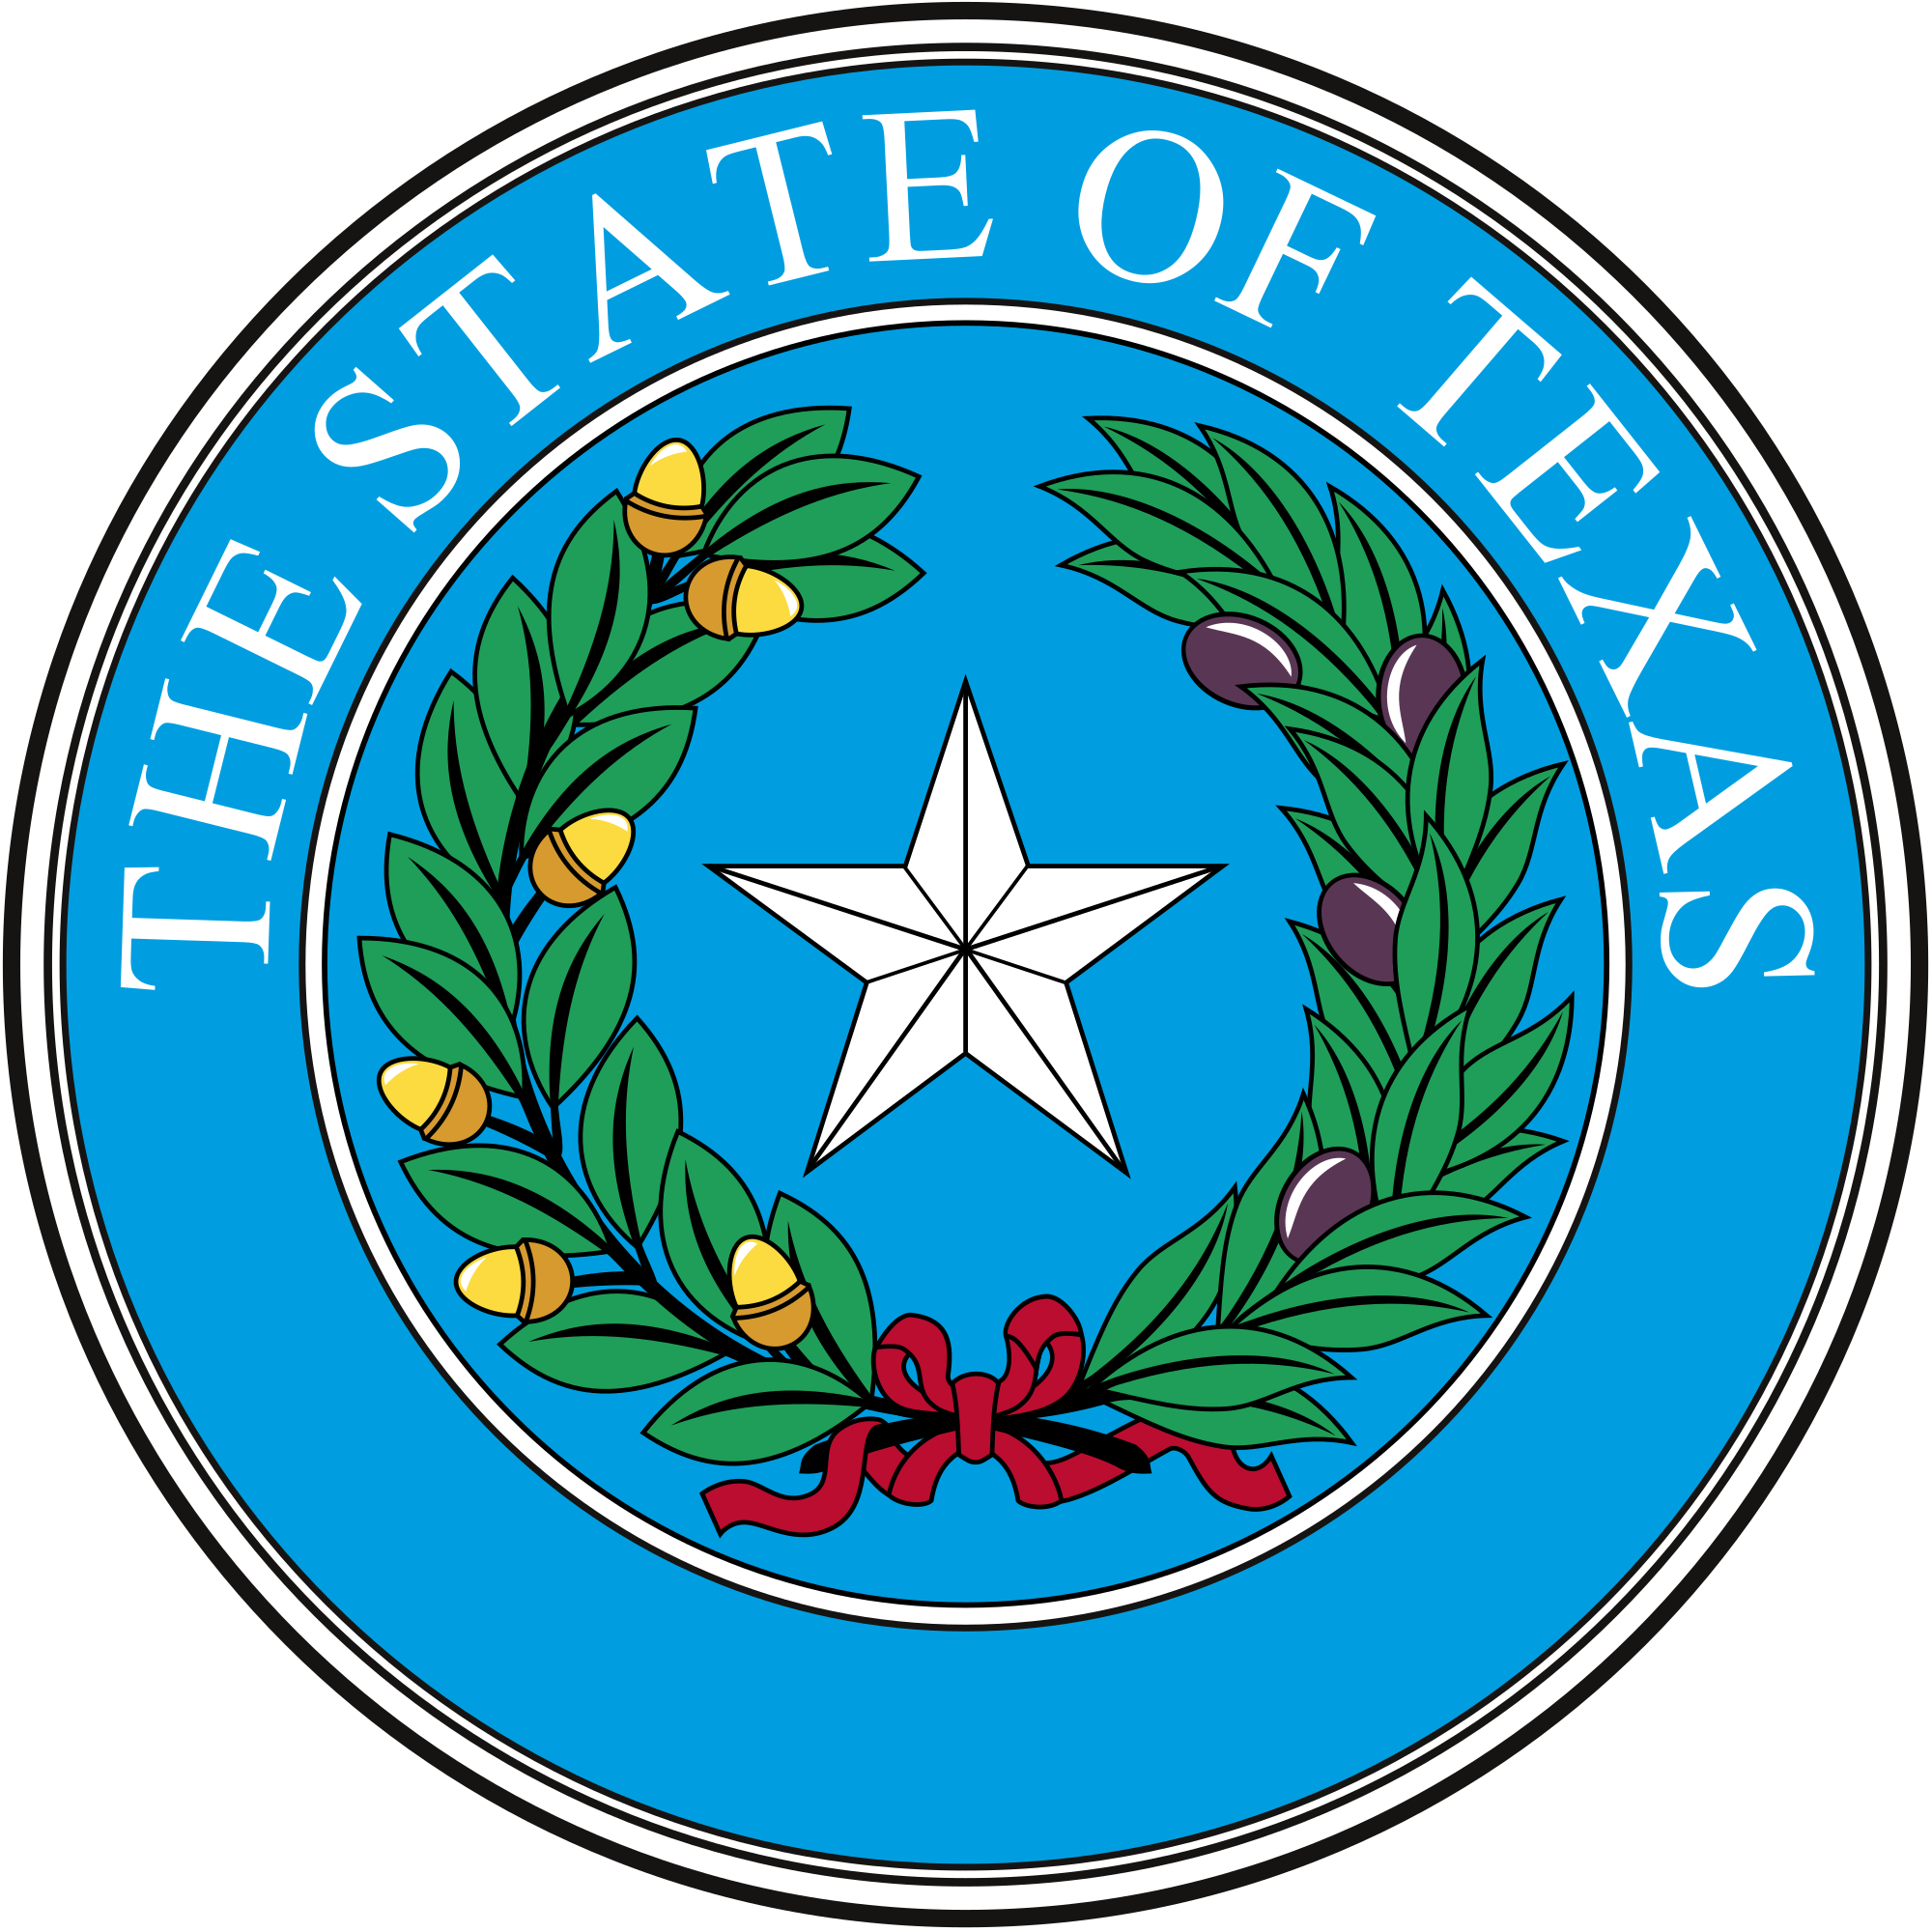 2000x2000 Fileseal Of Texas.svg